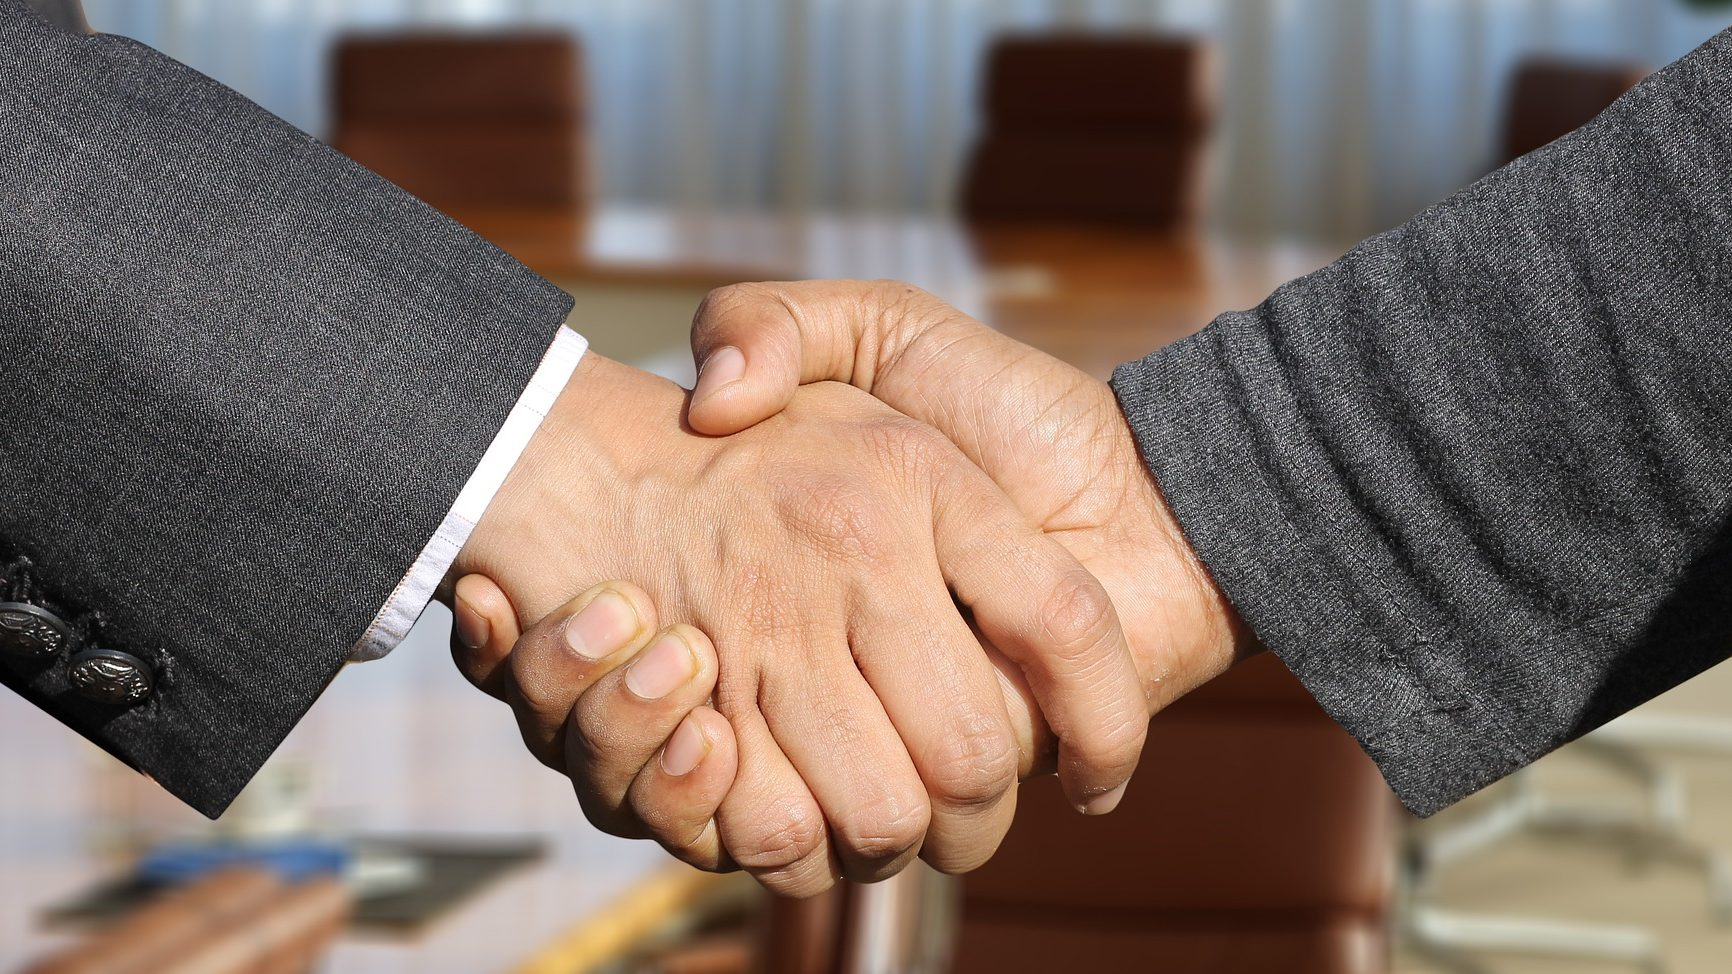 Venture Capital Fund shaking hands deal